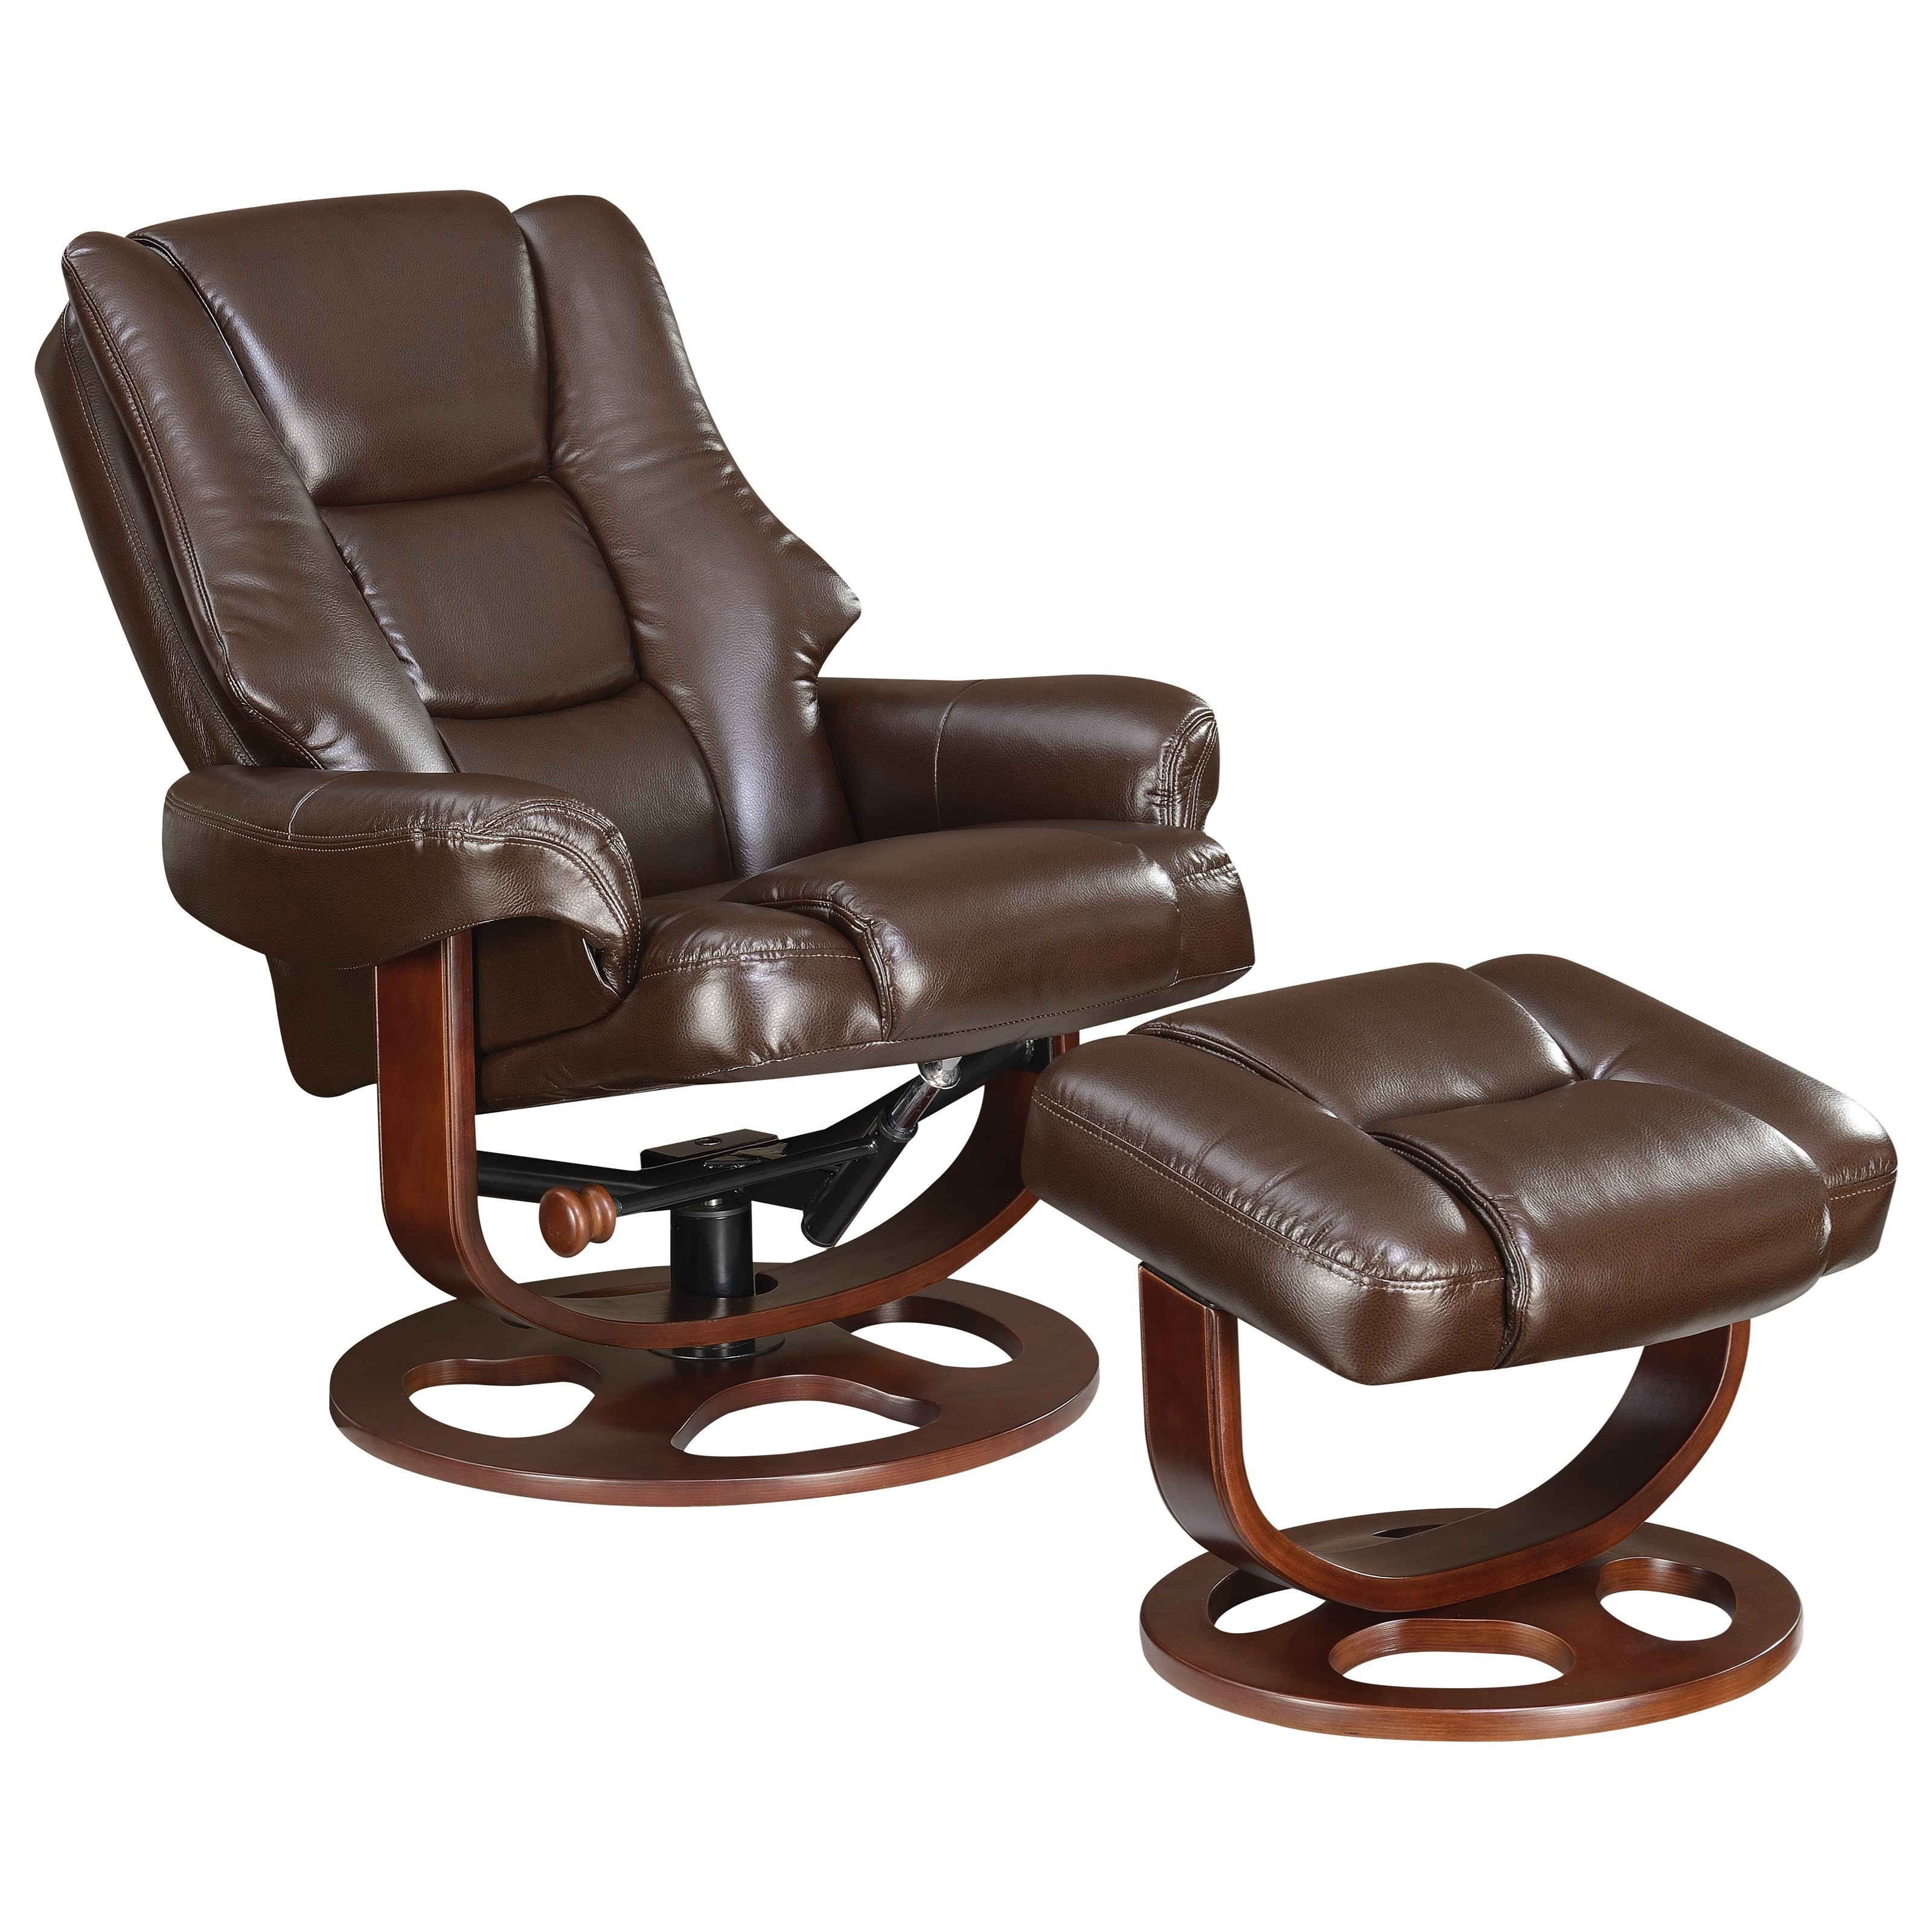 Swivel Recliner Chair & Ottoman Set in Brown Leatherette